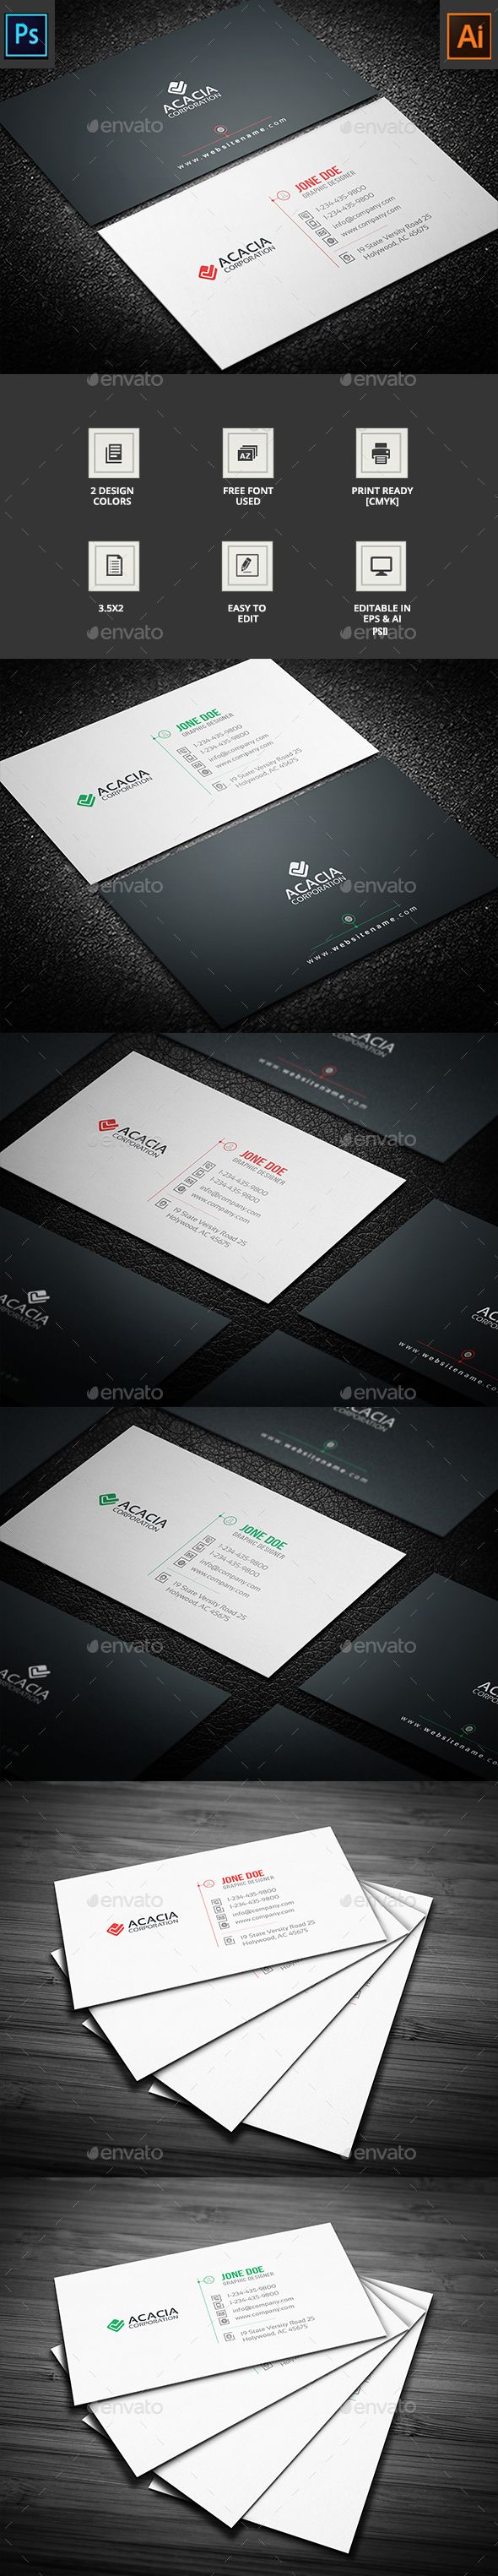 Business Card - #Corporate Business Cards Download here: https://graphicriver.net/item/business-card/16913055?reff=classicdesignp